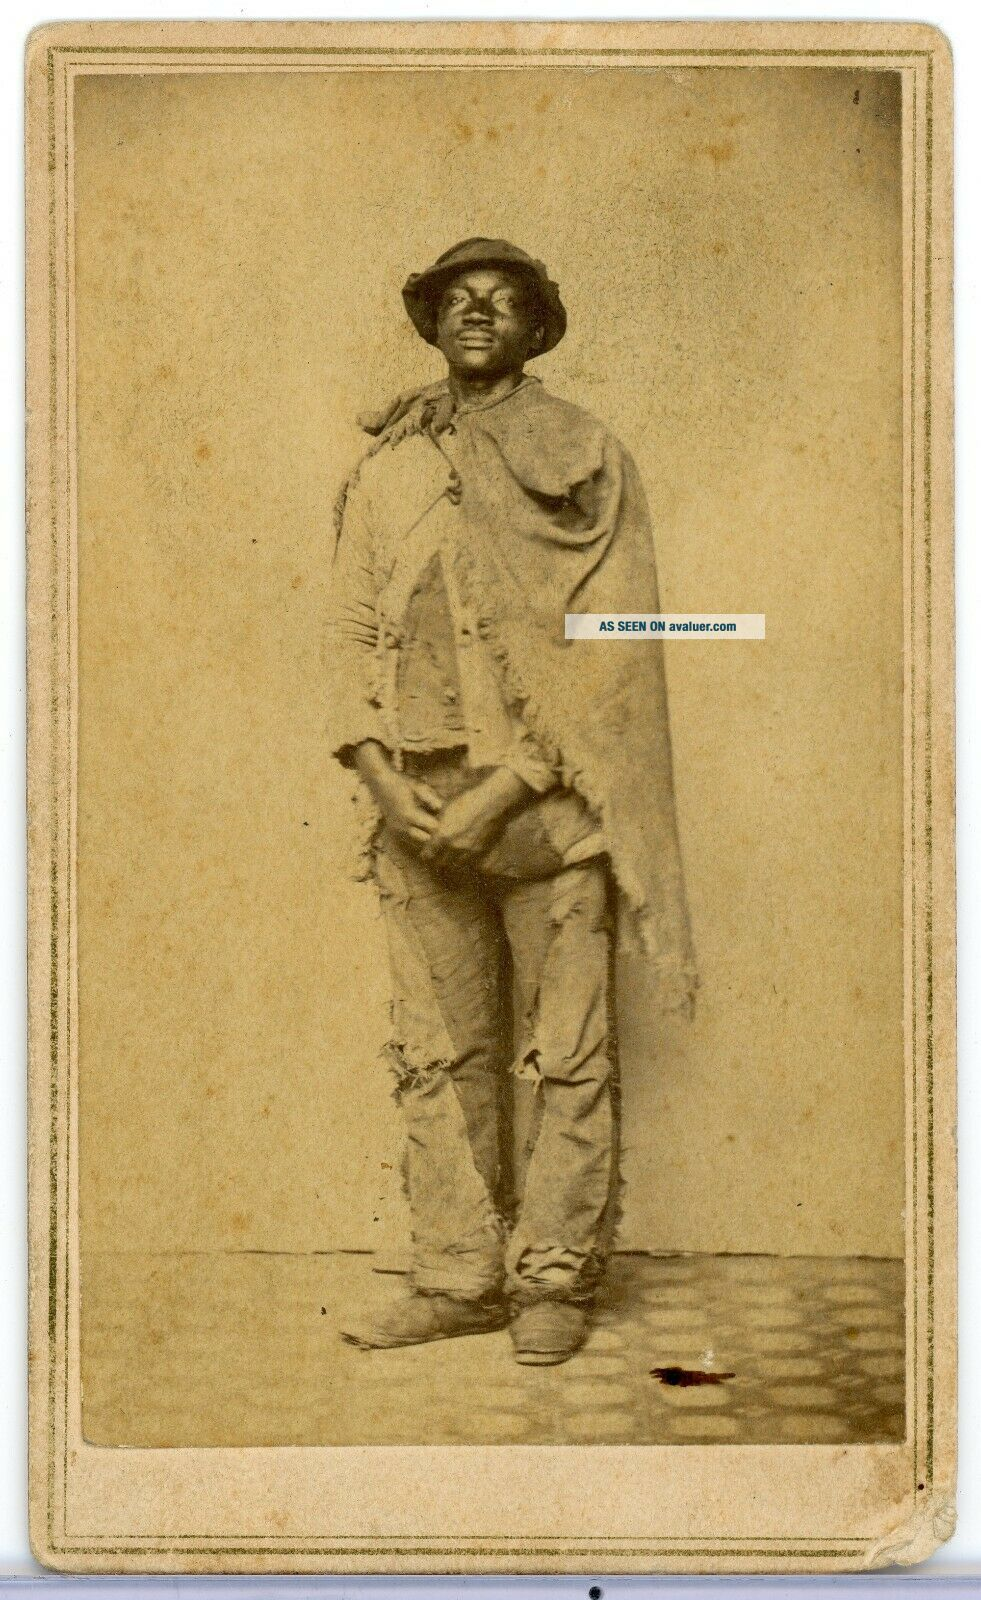 RARE CDV CIVIL WAR AFRICAN AMERICAN CONTRABAND & HORACE JAMES OFFICER 25TH MA